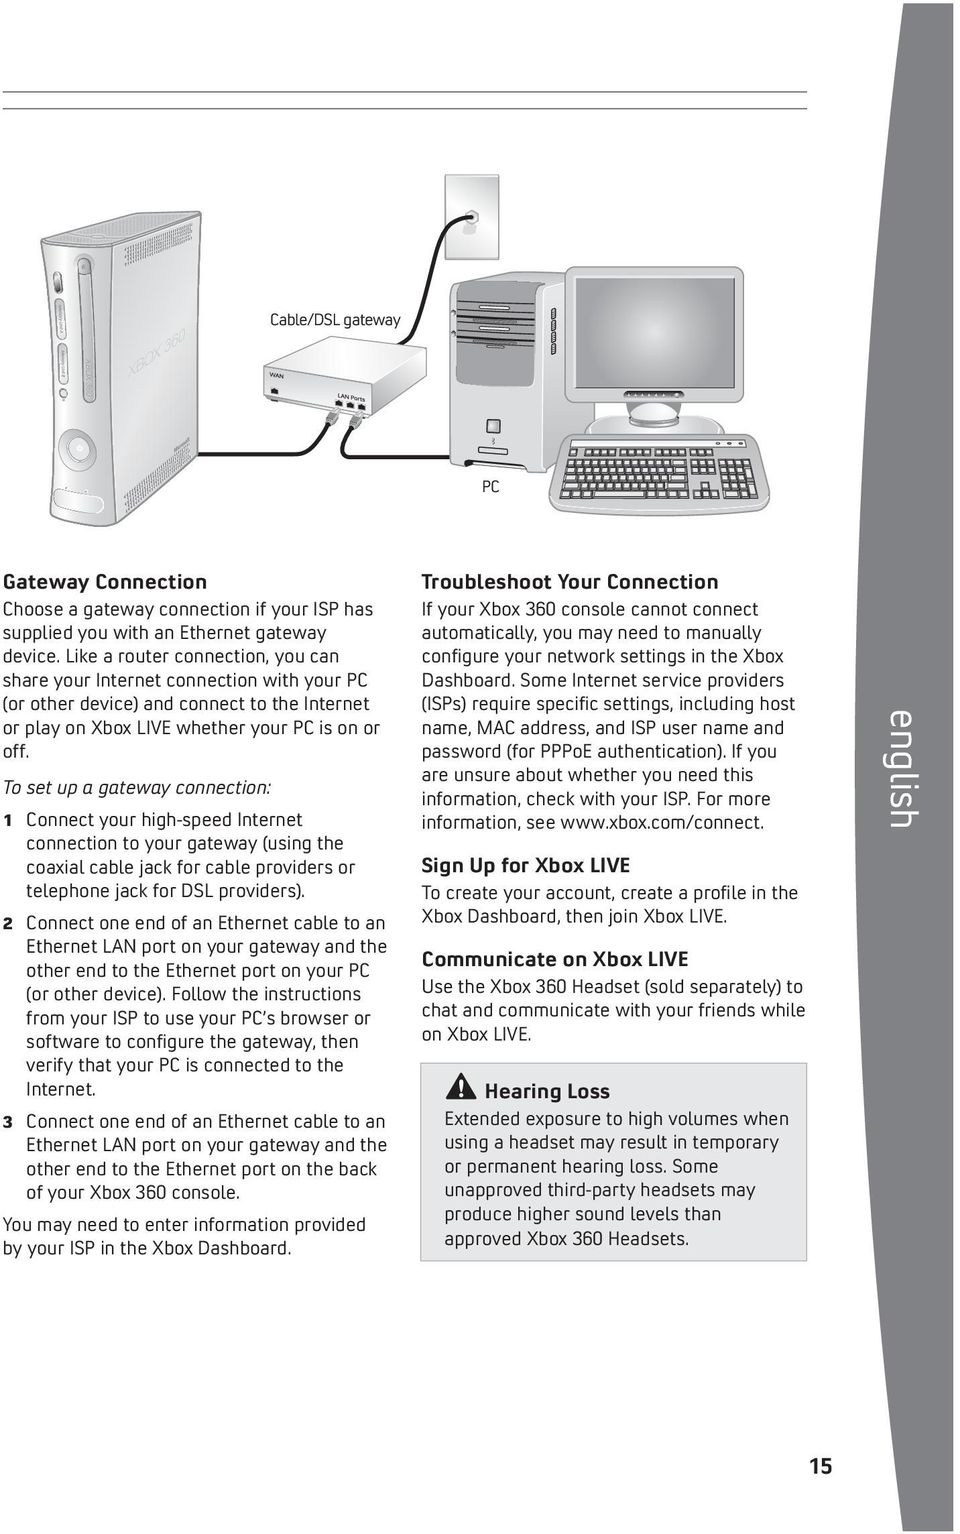 To set up a gateway connection: 1 Connect your high-speed Internet connection to your gateway (using the coaxial cable jack for cable providers or telephone jack for DSL providers).